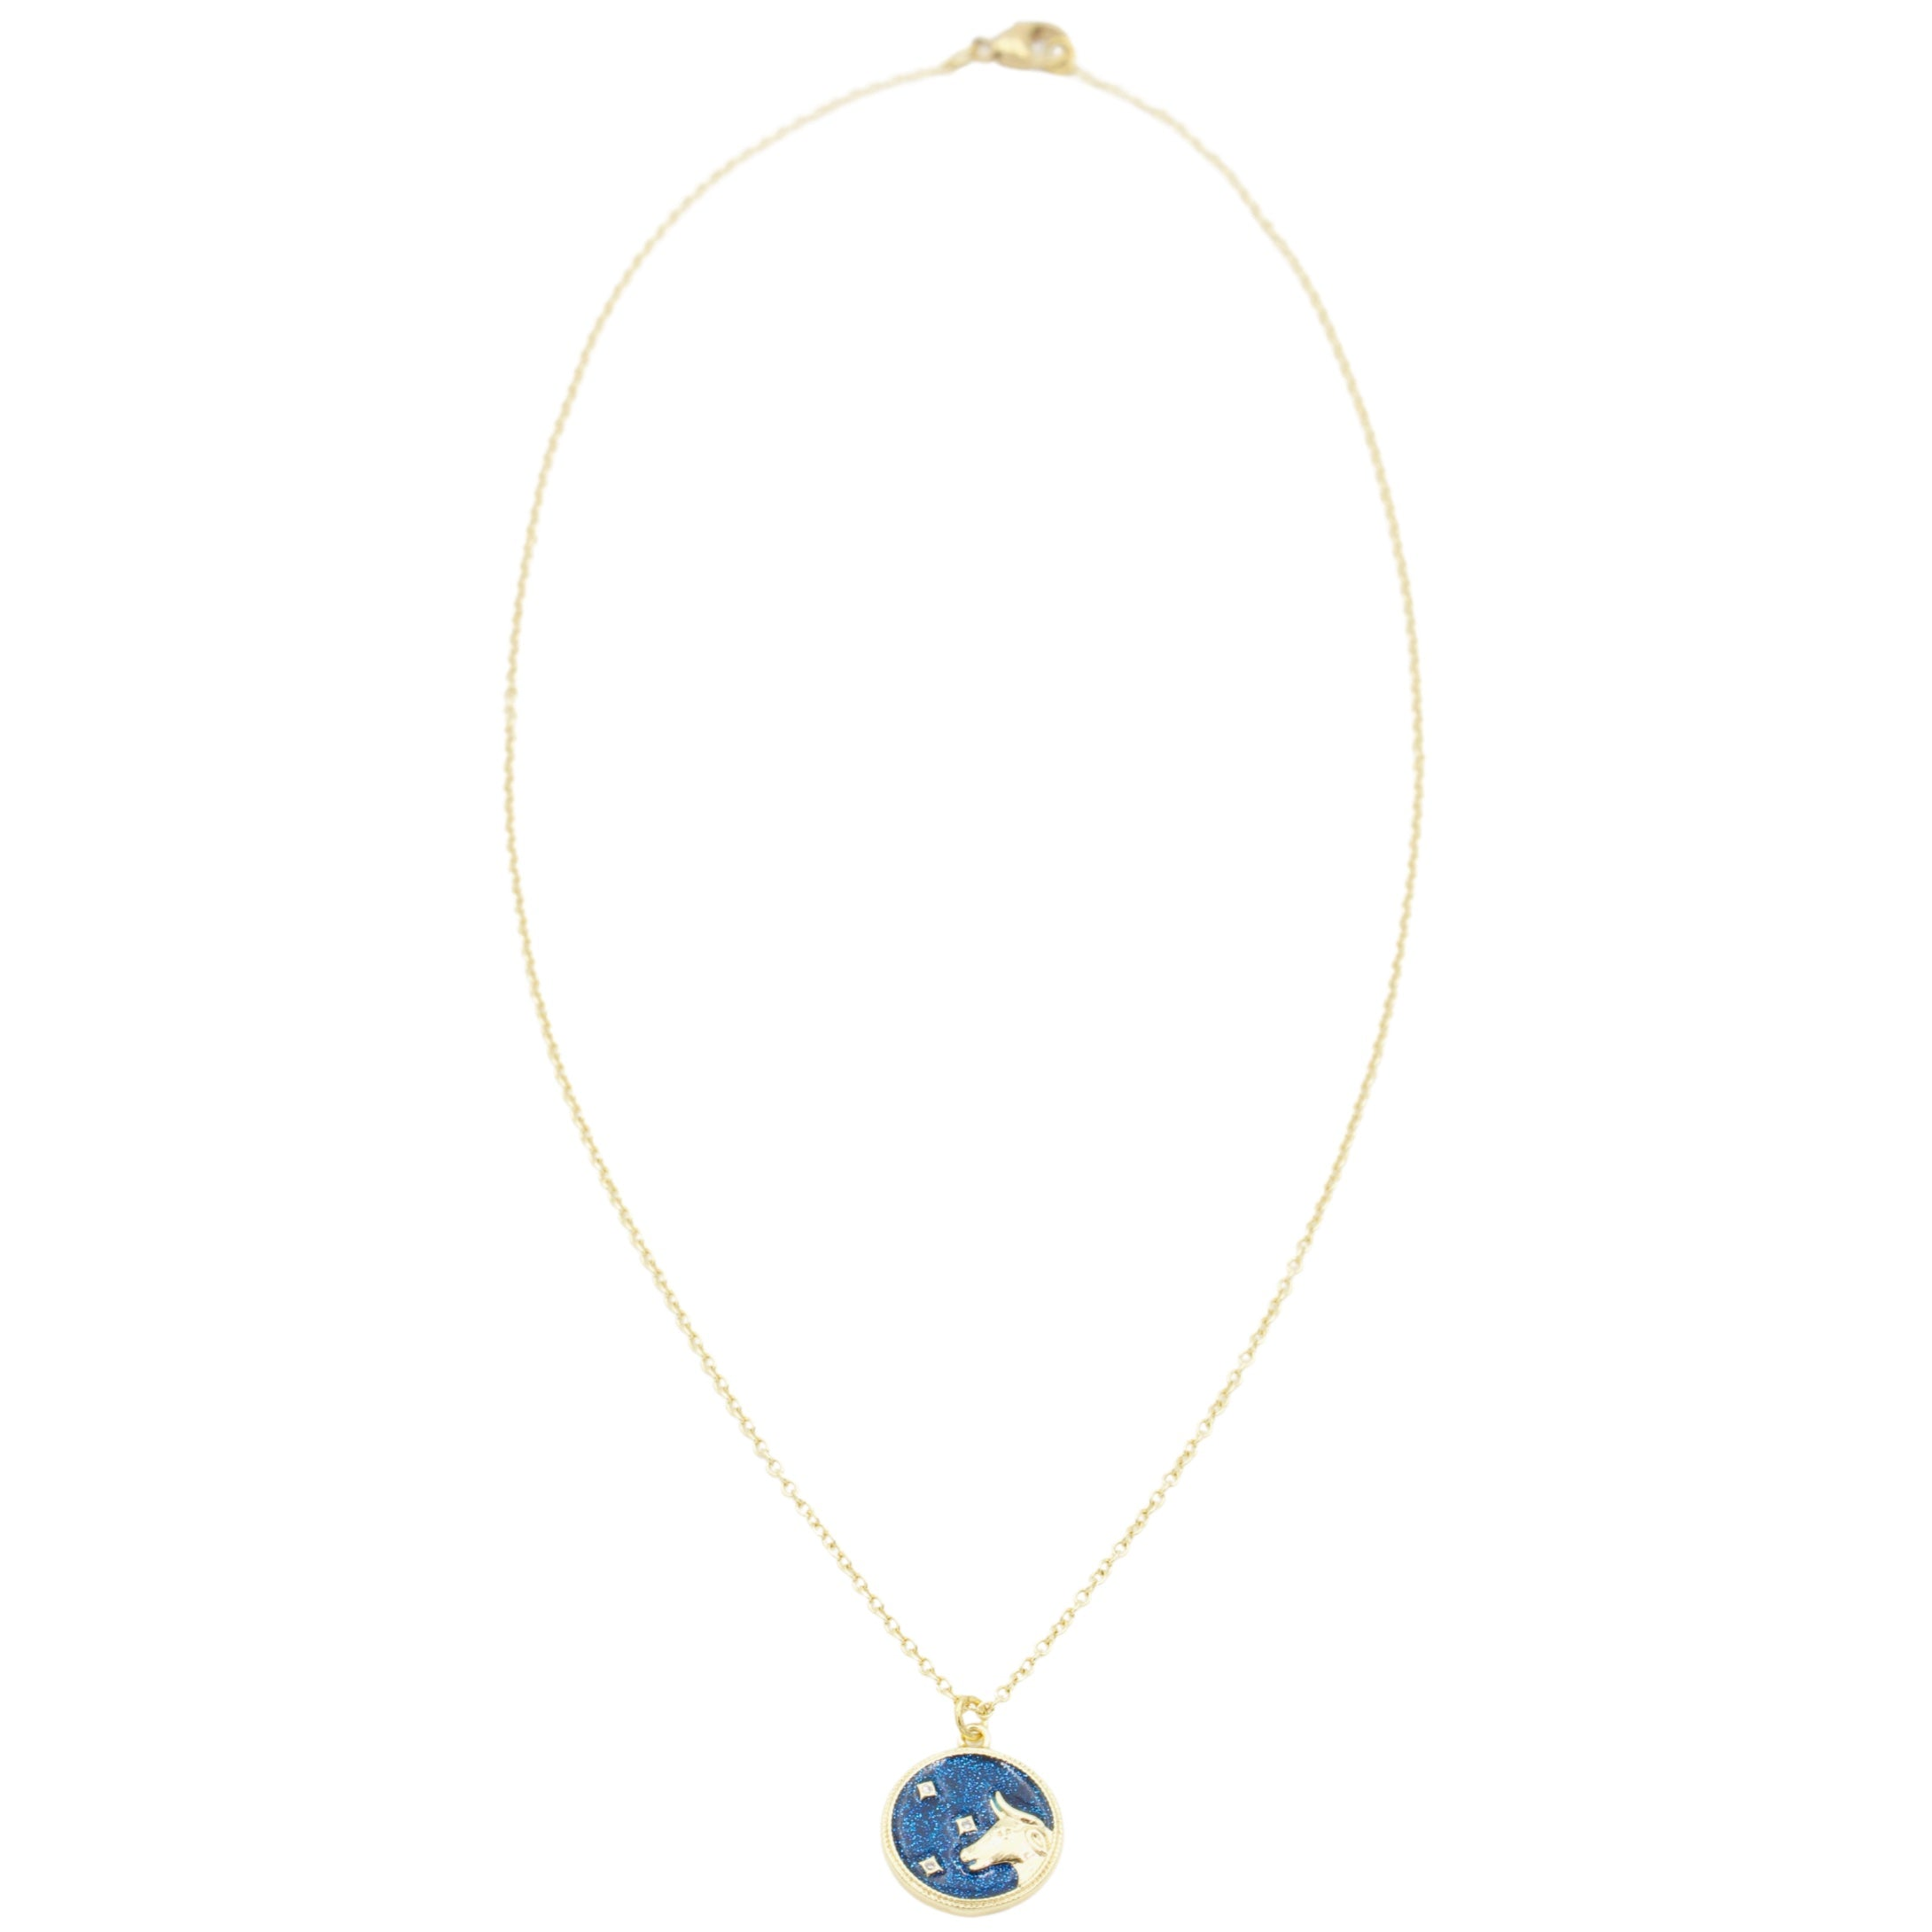 AW Boutique's Zodiac Astro Coin is a dainty pendant full of sparkle and shine.  This piece adds a pop of colour to your everyday wear and at 18 inches is a great length to mix and layer your other chains with.  Proudly wear either your own star sign or the star sign of a loved one close to your heart.  Zodiac shown is Taurus.